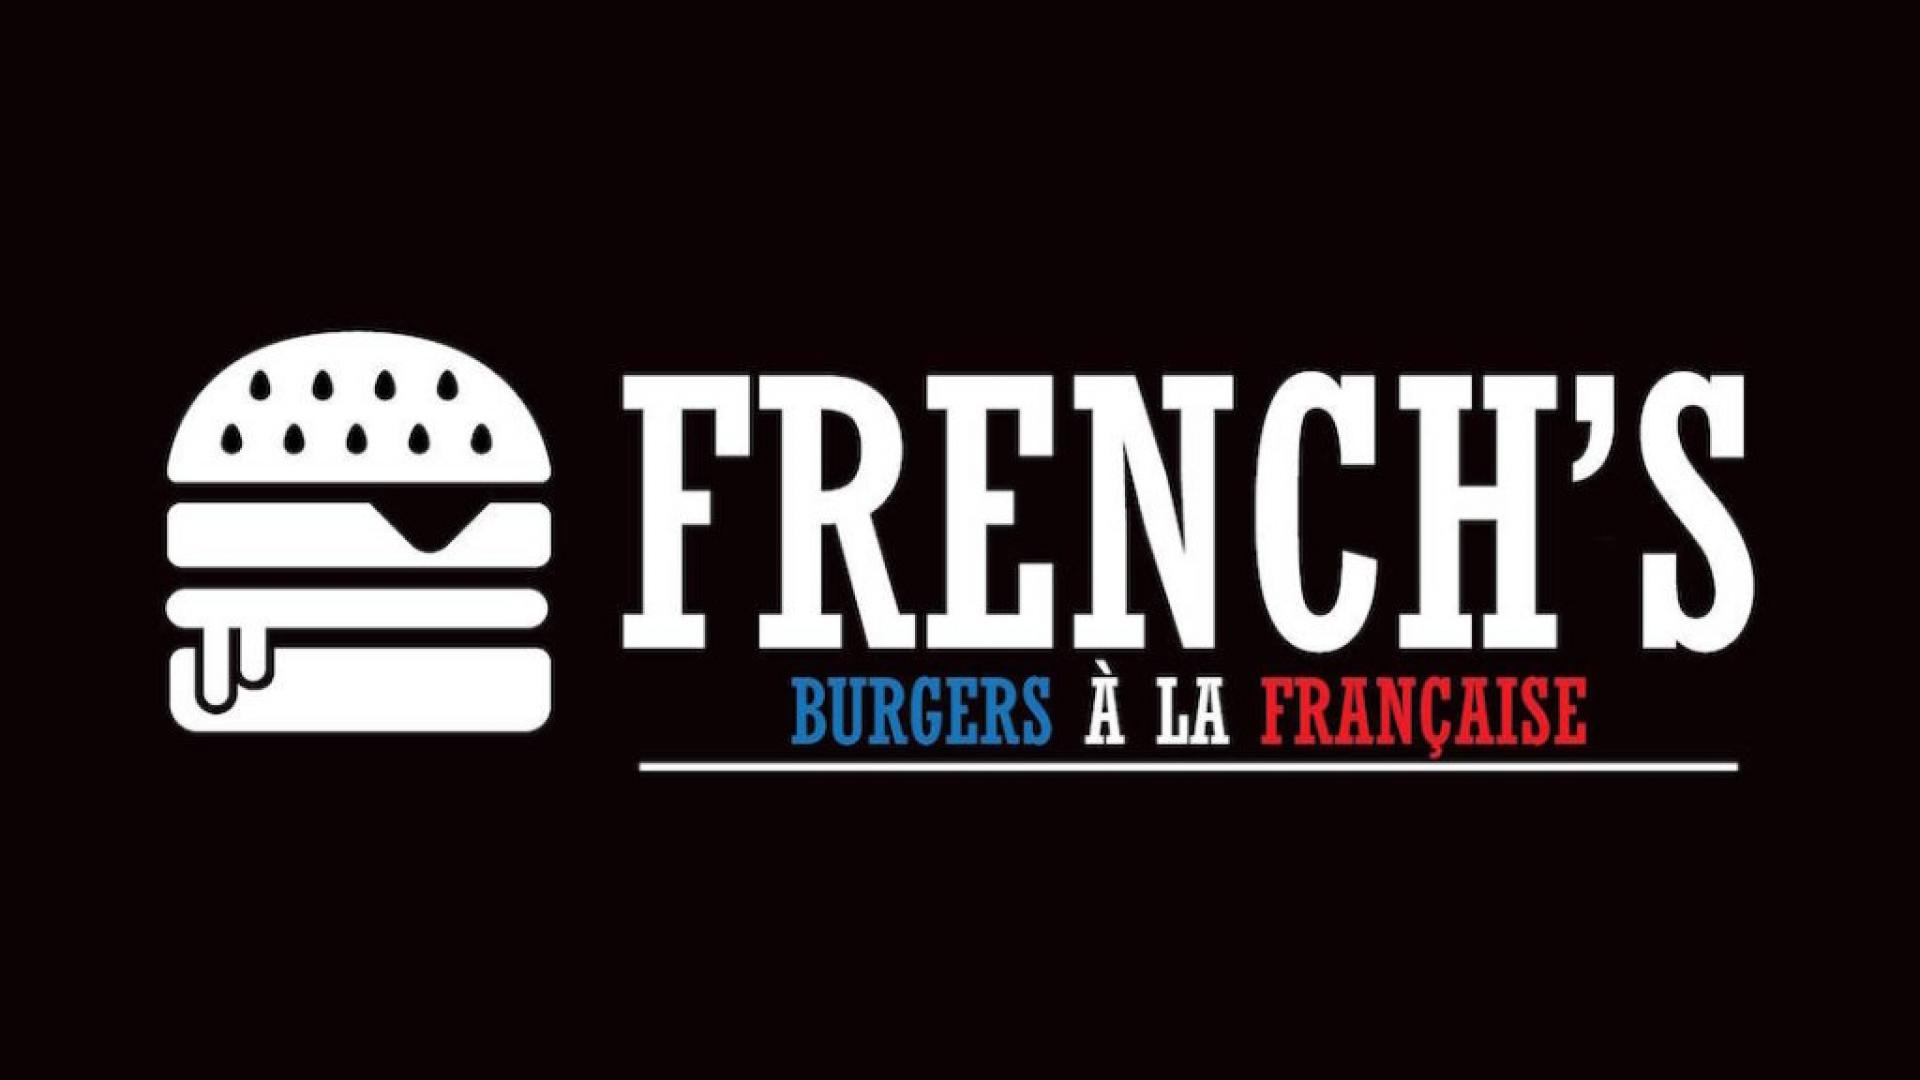 FRENCH'S BURGERS A LA FRANCAISE